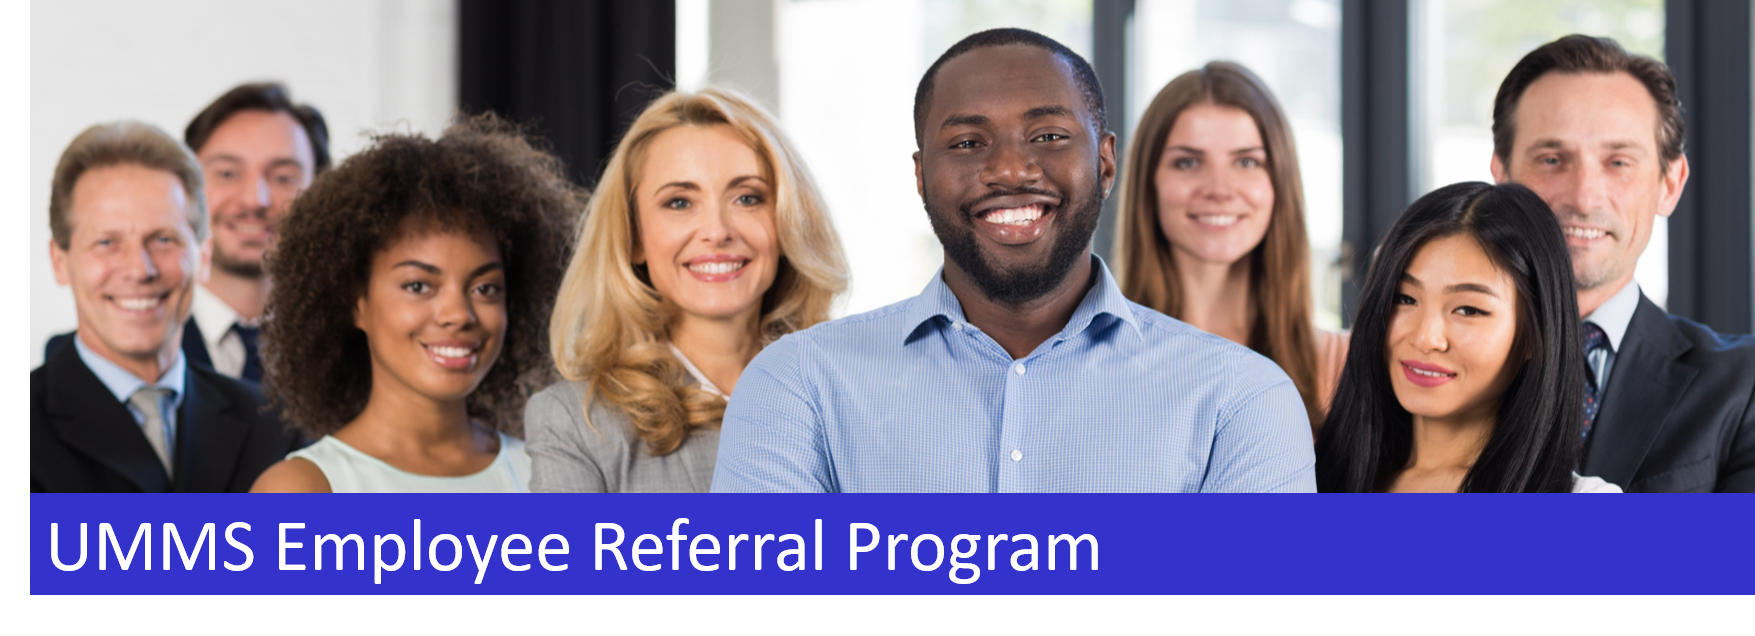 UMMS Employee Referral Program